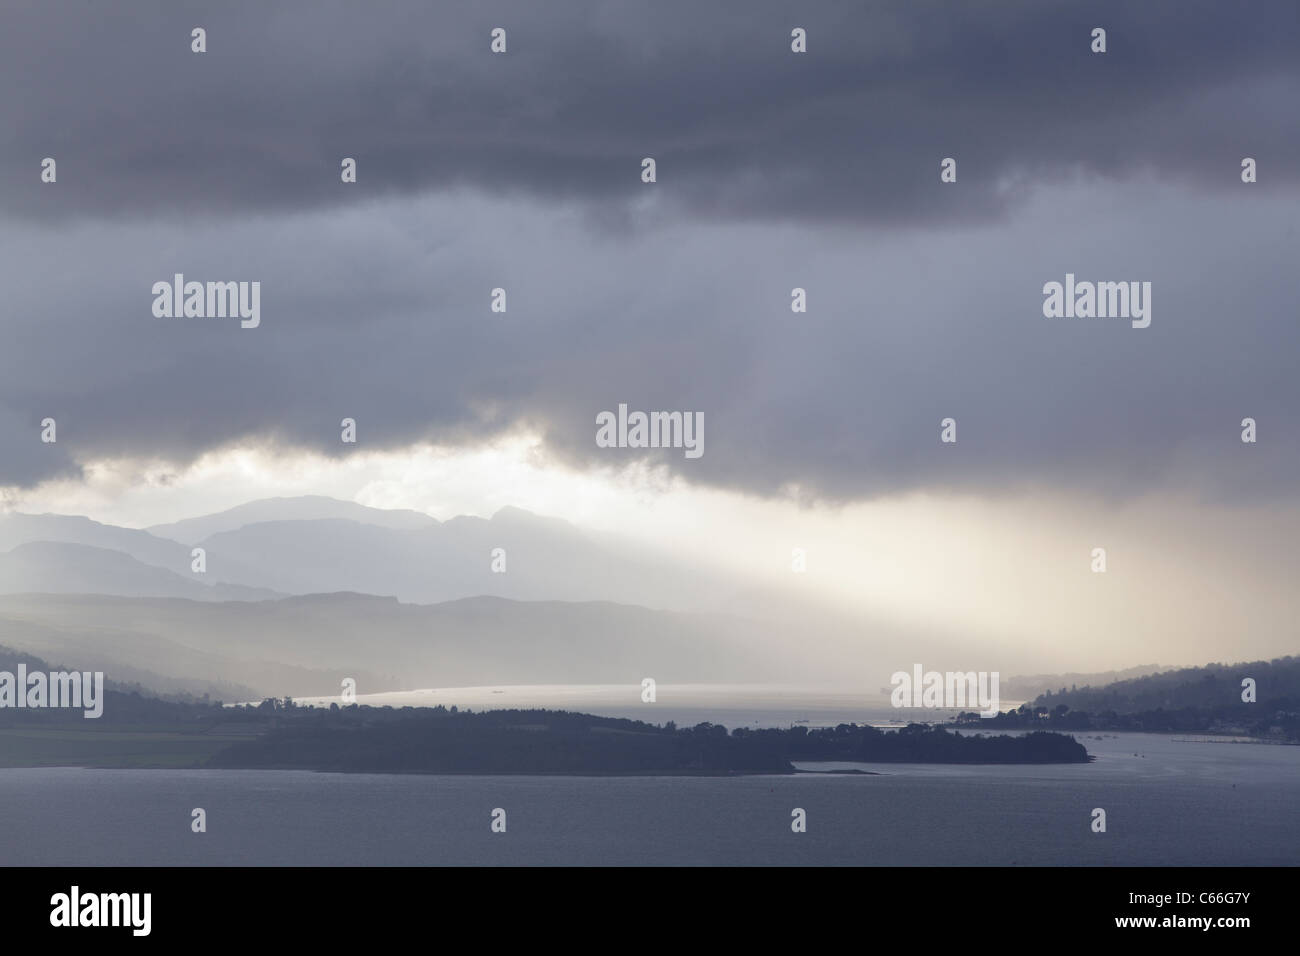 Bad weather breaking over the Rosneath Peninsula and the Gare Loch, Scotland, UK - Stock Image